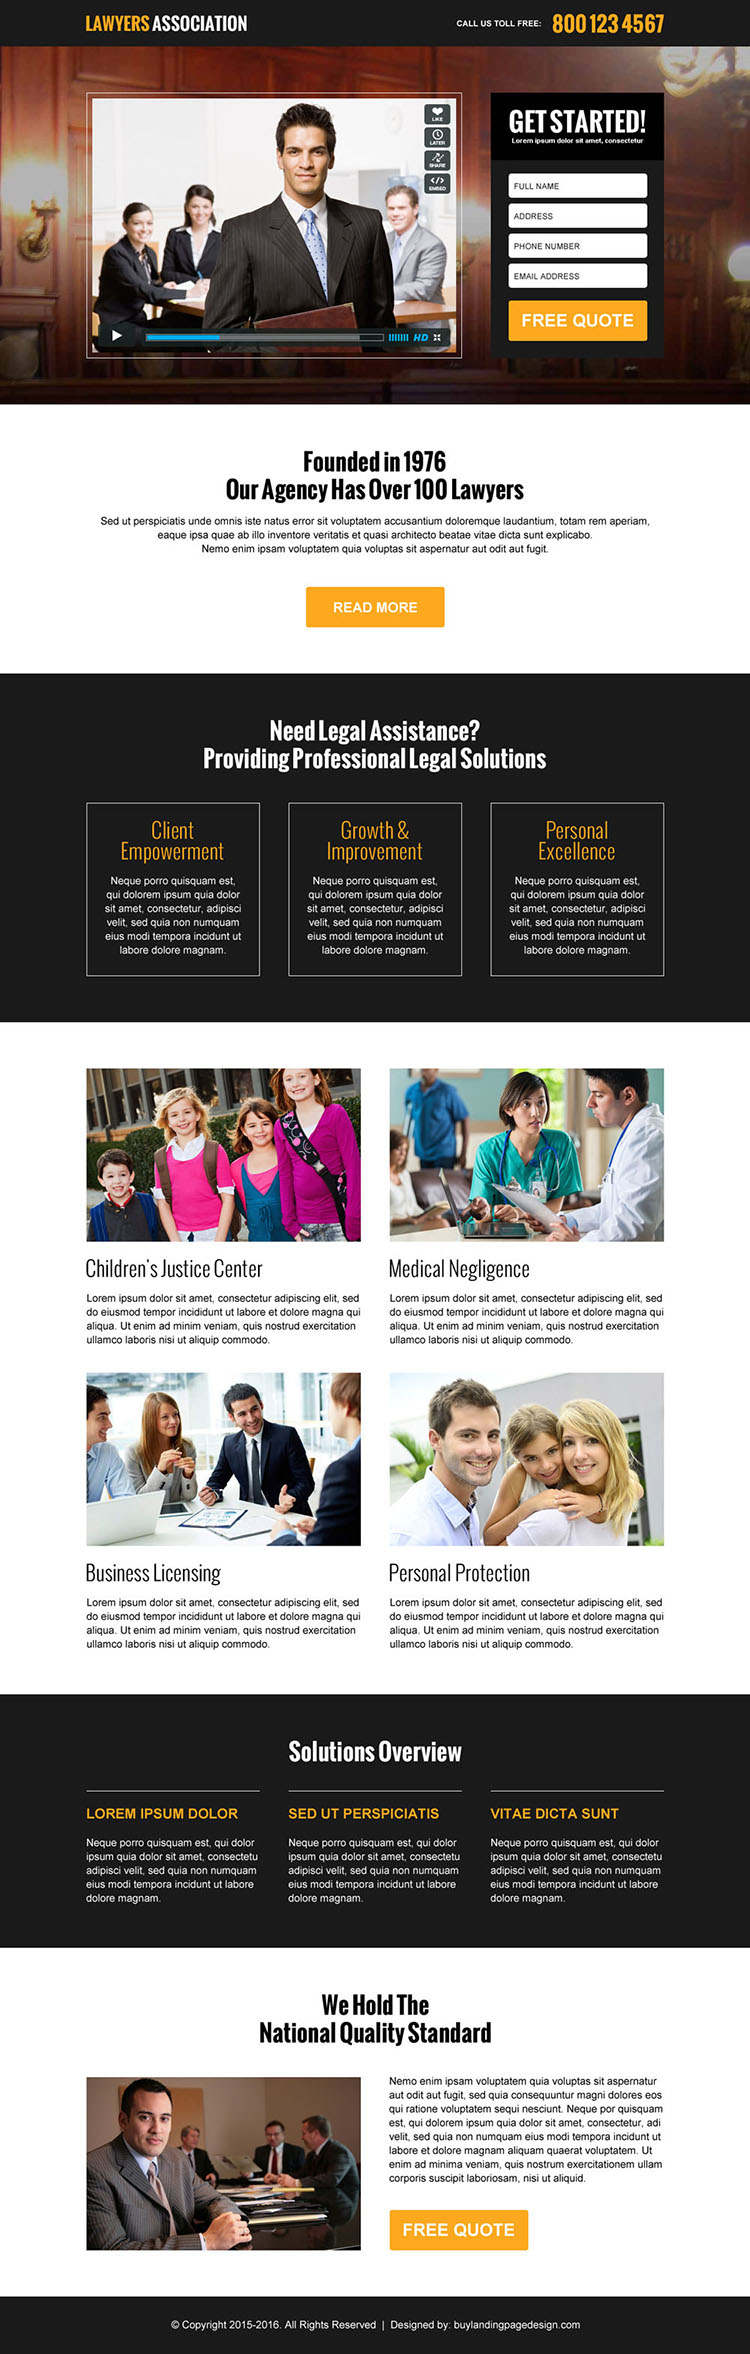 lawyers association video lead gen landing page design